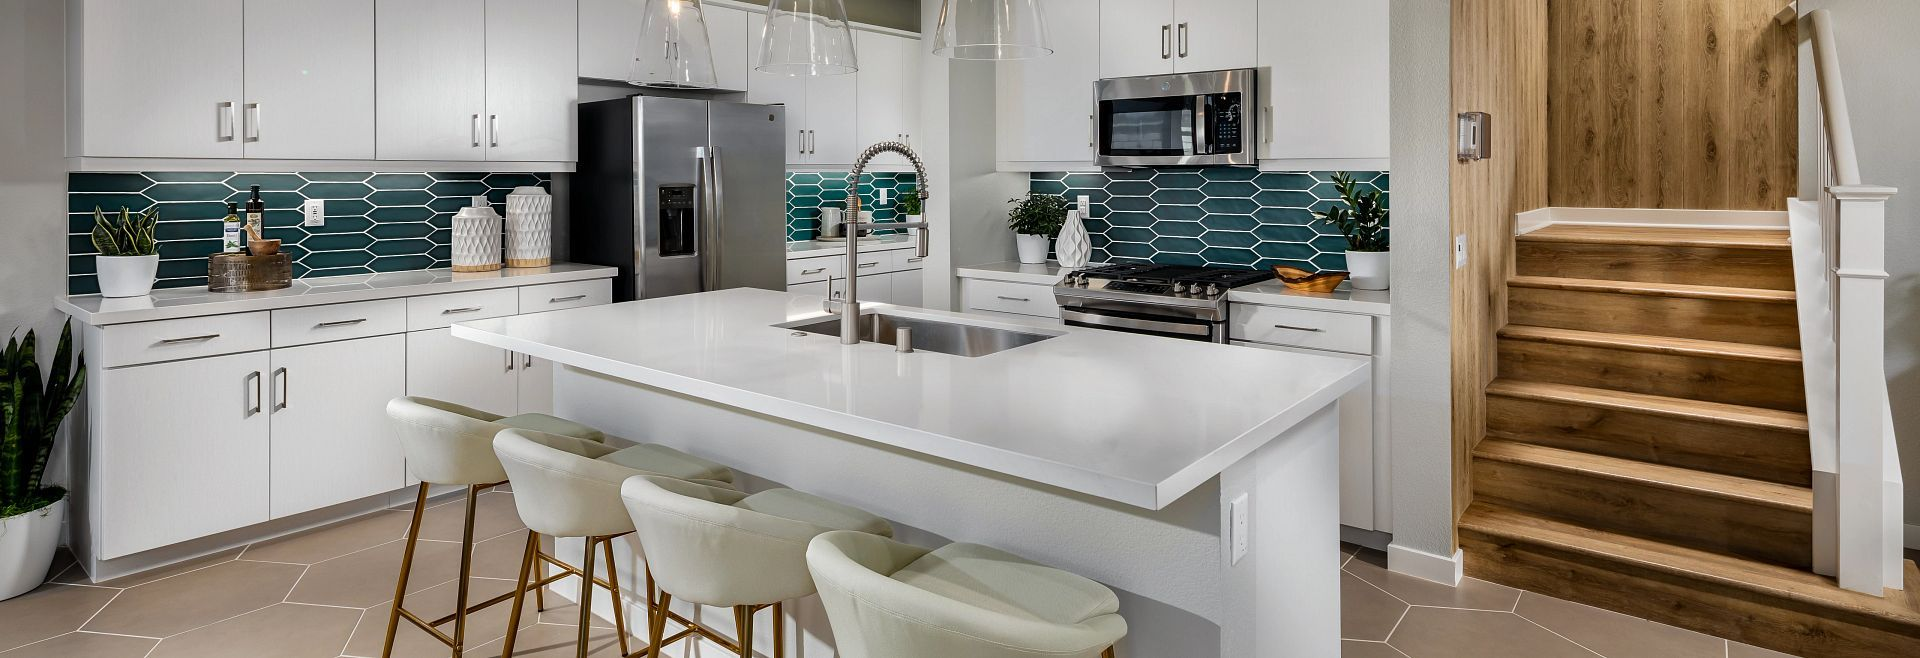 Kitchen featured in the Plan 3 By Shea Homes in San Diego, CA